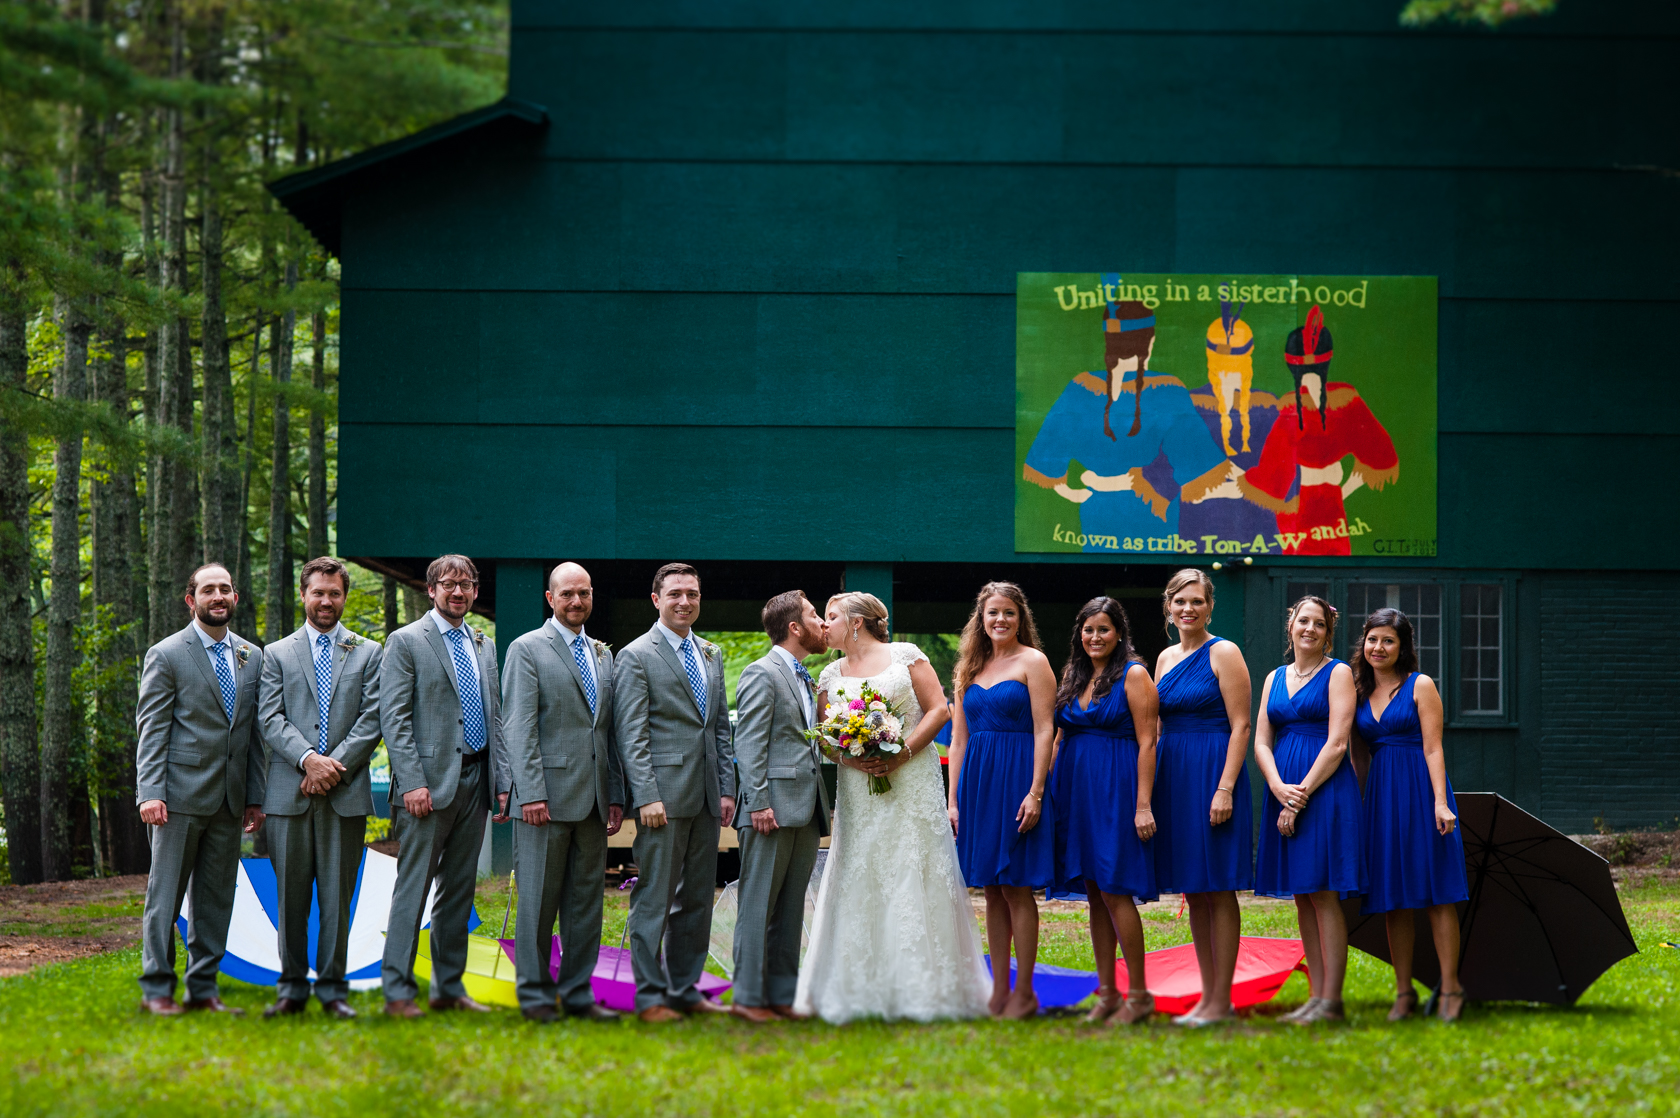 bride and groom with their wedding party stand together in front of Camp Ton a Wandah's bunk house